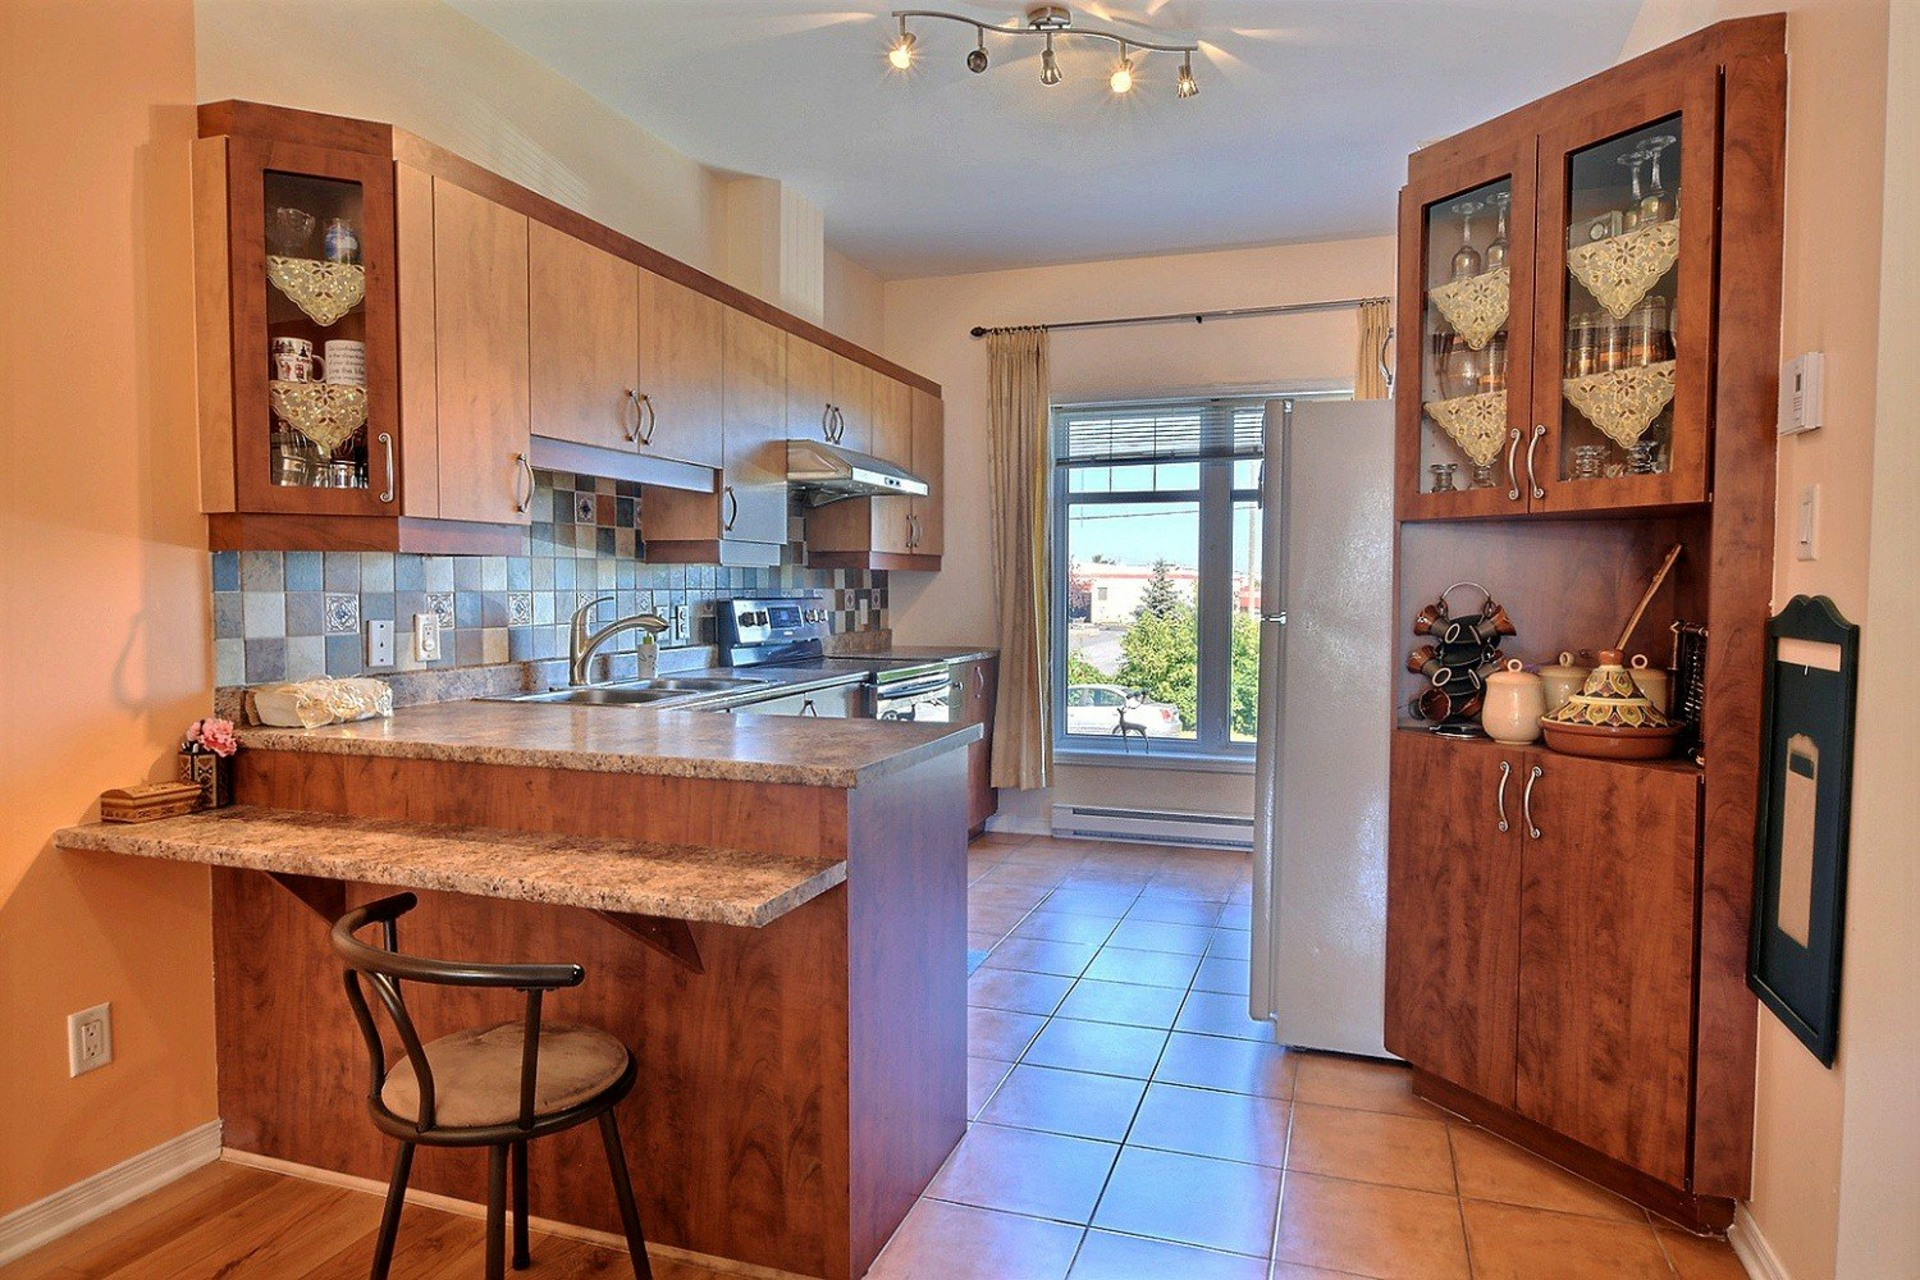 image 7 - House For sale Brossard - 6 rooms